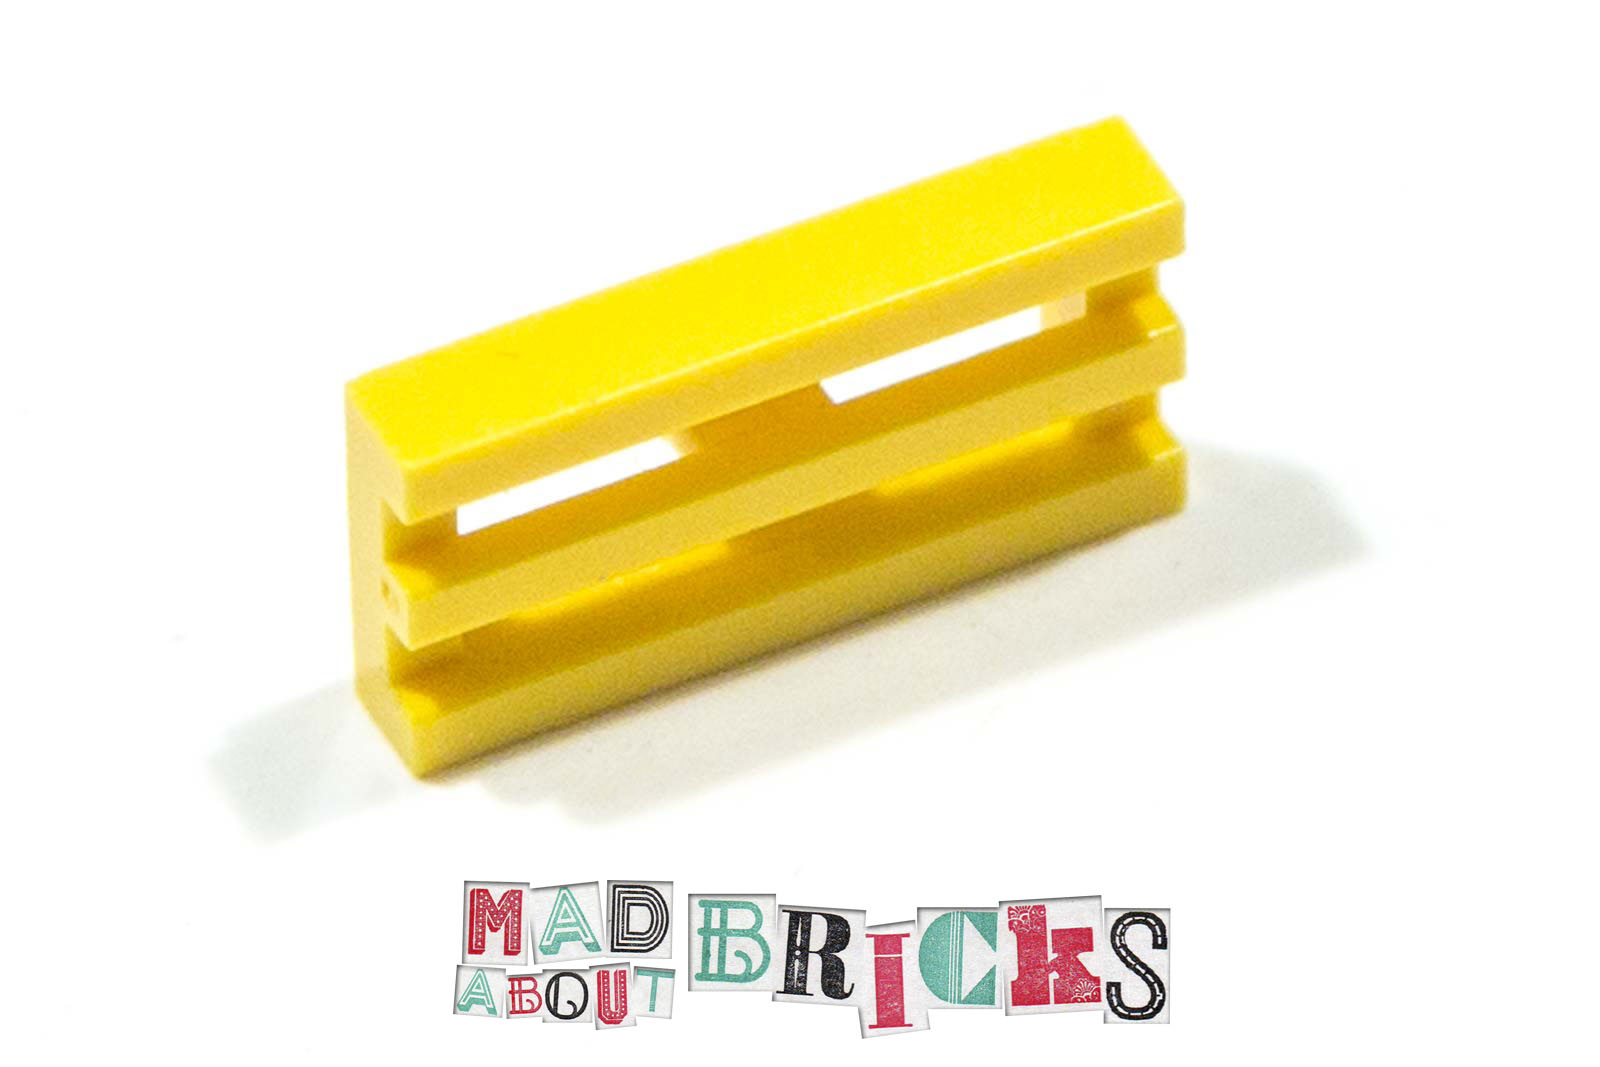 Lego Radiator lego 2412 1×2 radiator grille 241224 | mad about bricks